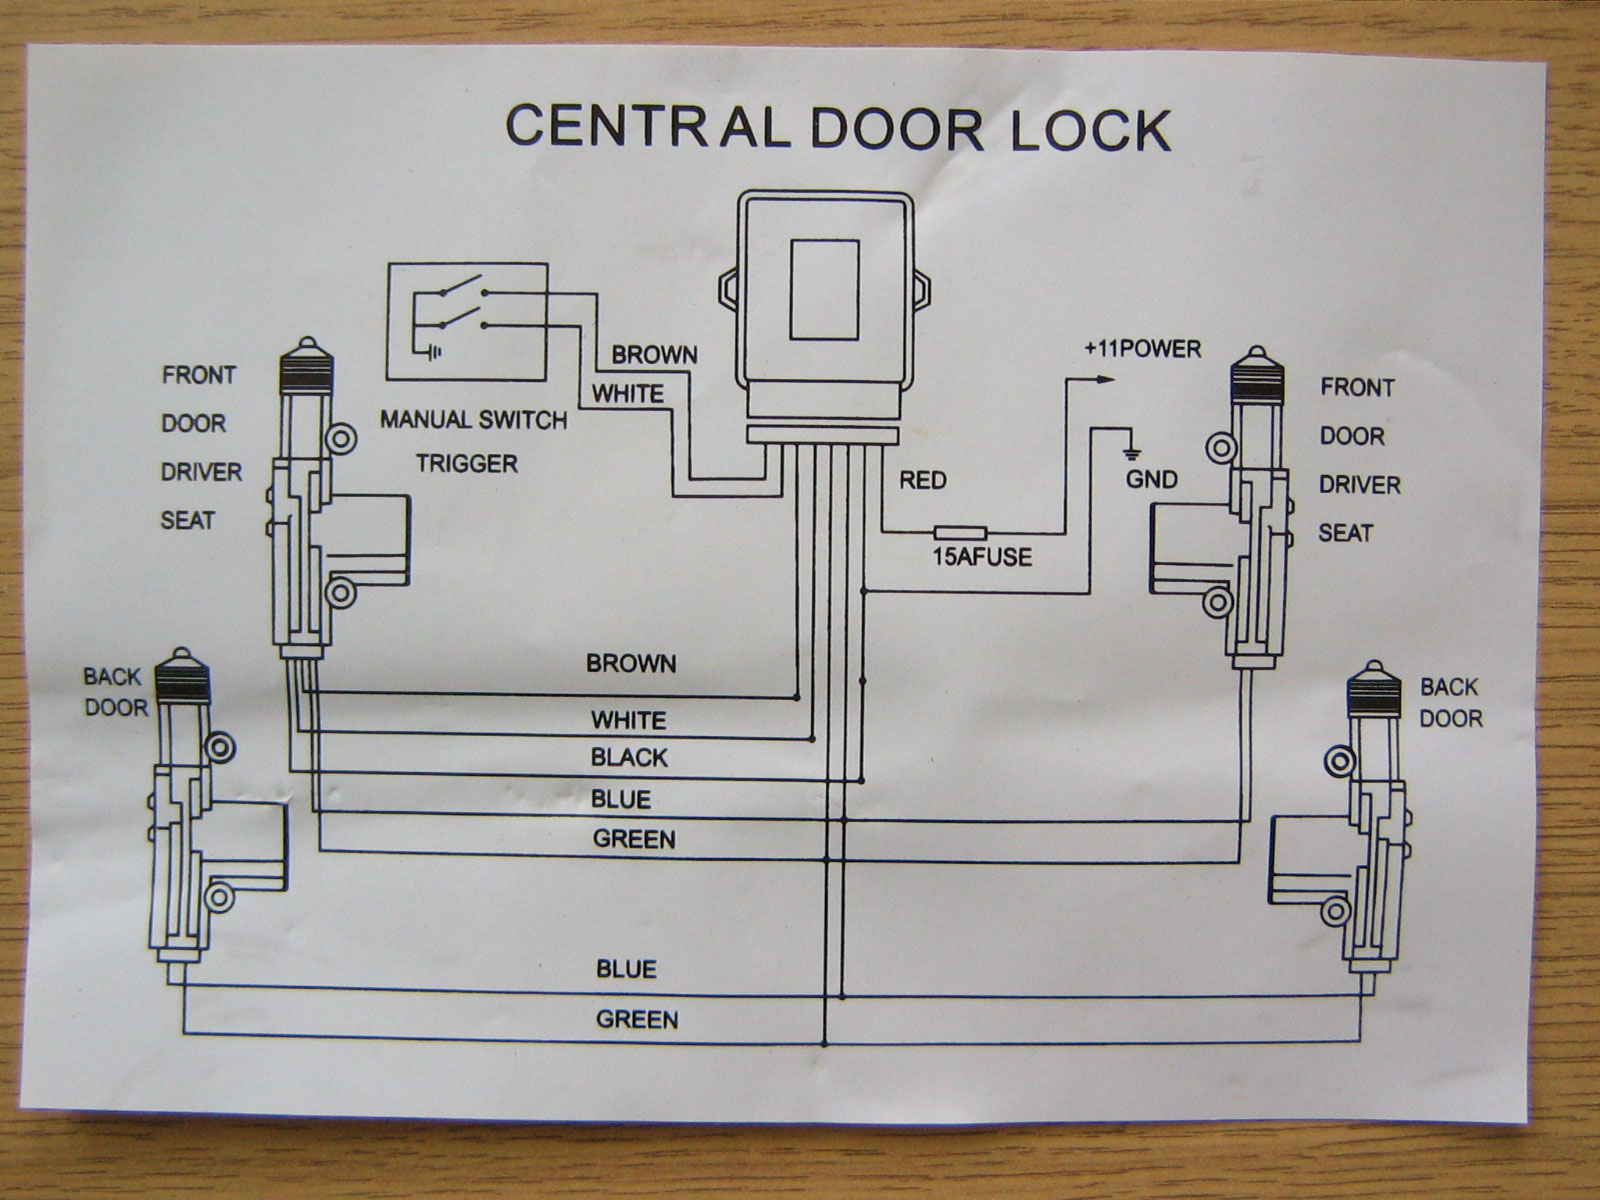 731BA3 Citroen Xsara Central Locking Wiring Diagram | Wiring ... on pico cable, pico with no equipment, pico electrical products, pico connector, pico distributors, pico eugene oregon, pico transformer,